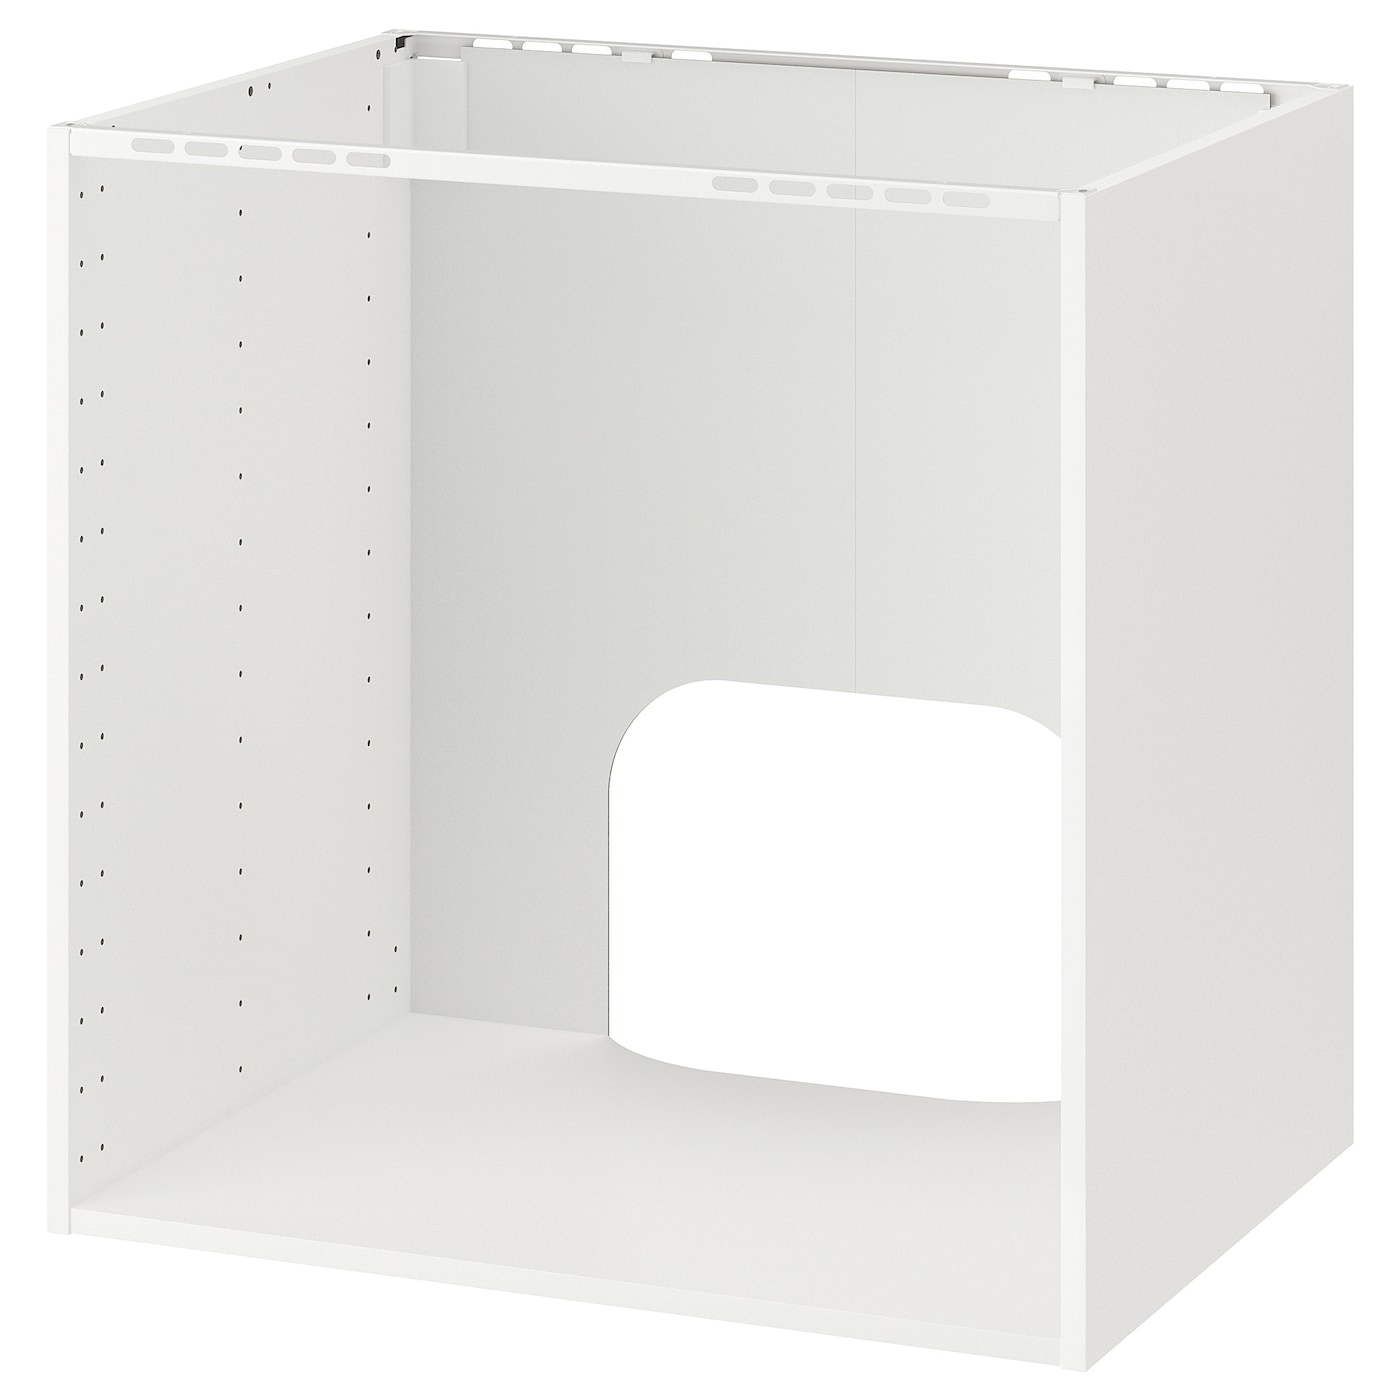 Metod Base Cabinet For Built In Oven Sink White Ikea